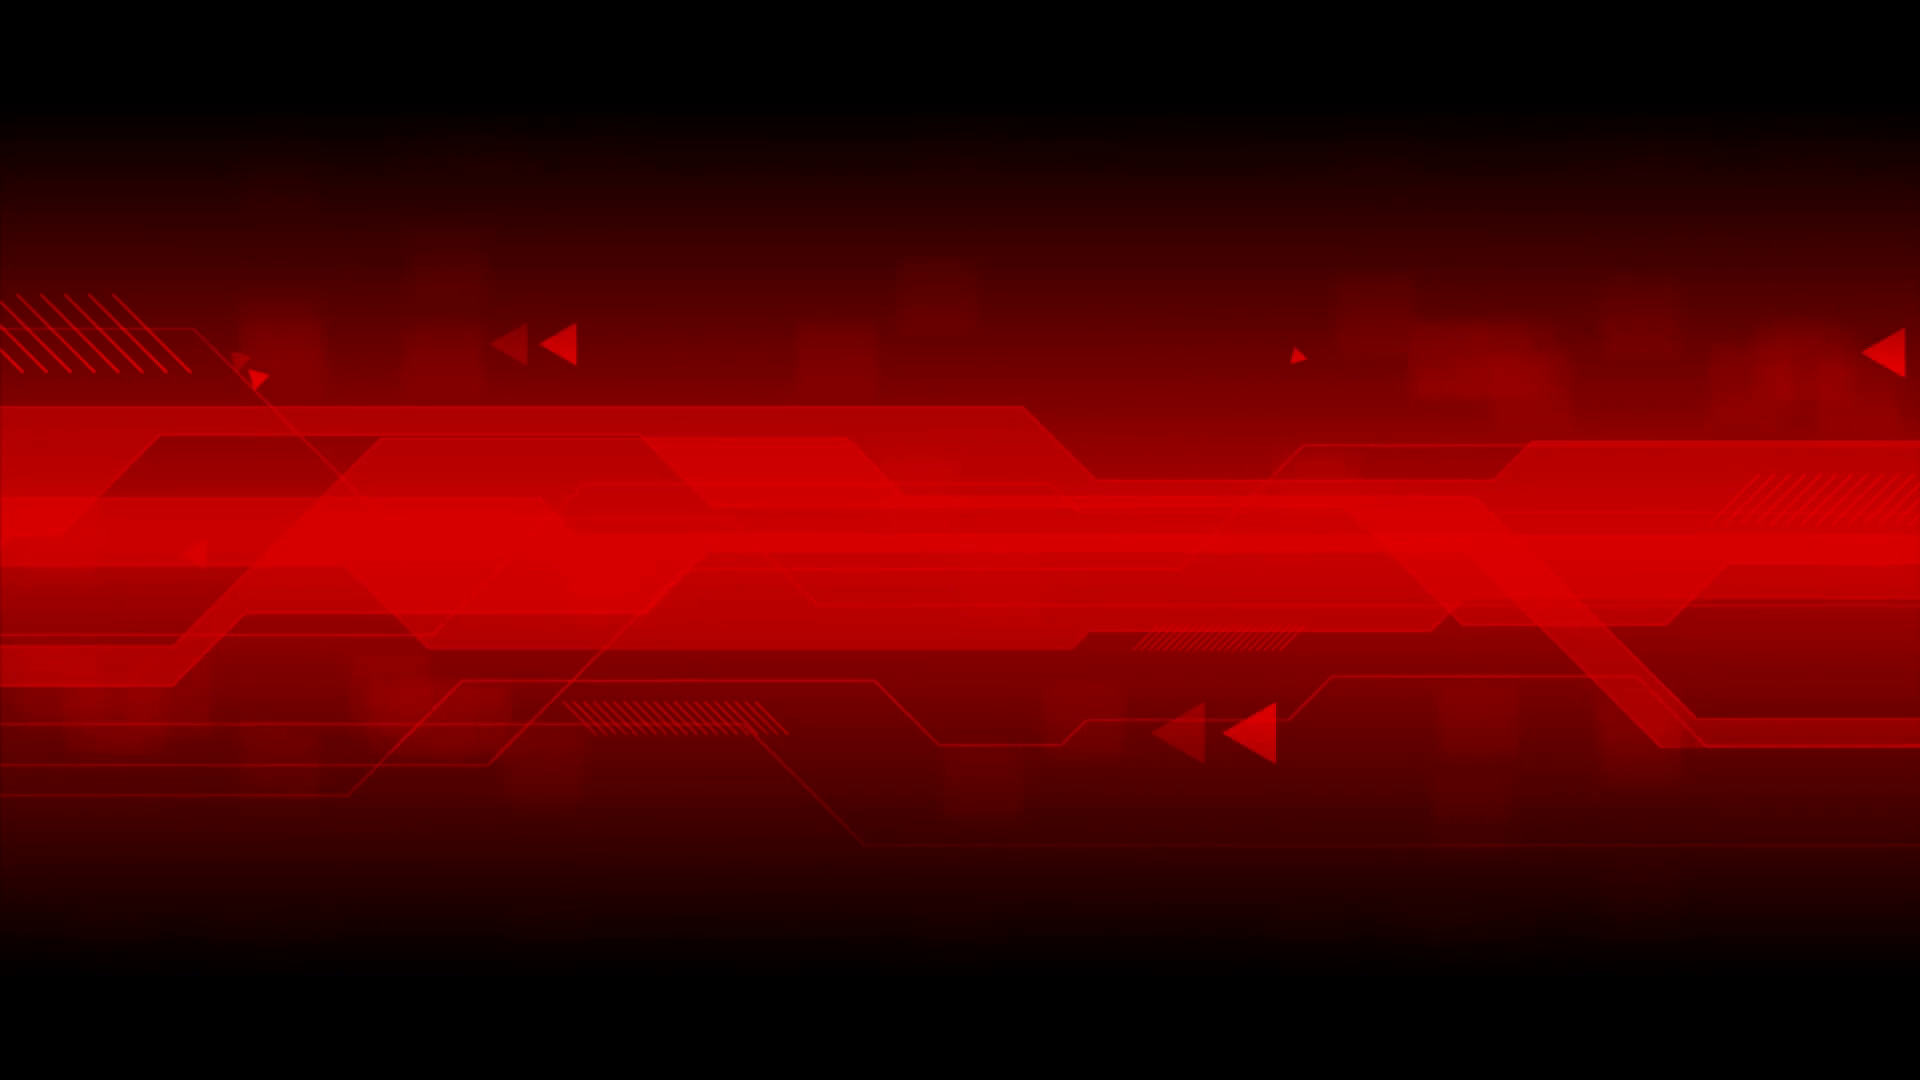 Abstract Red Technology Wallpapers Top Free Abstract Red Technology Backgrounds Wallpaperaccess